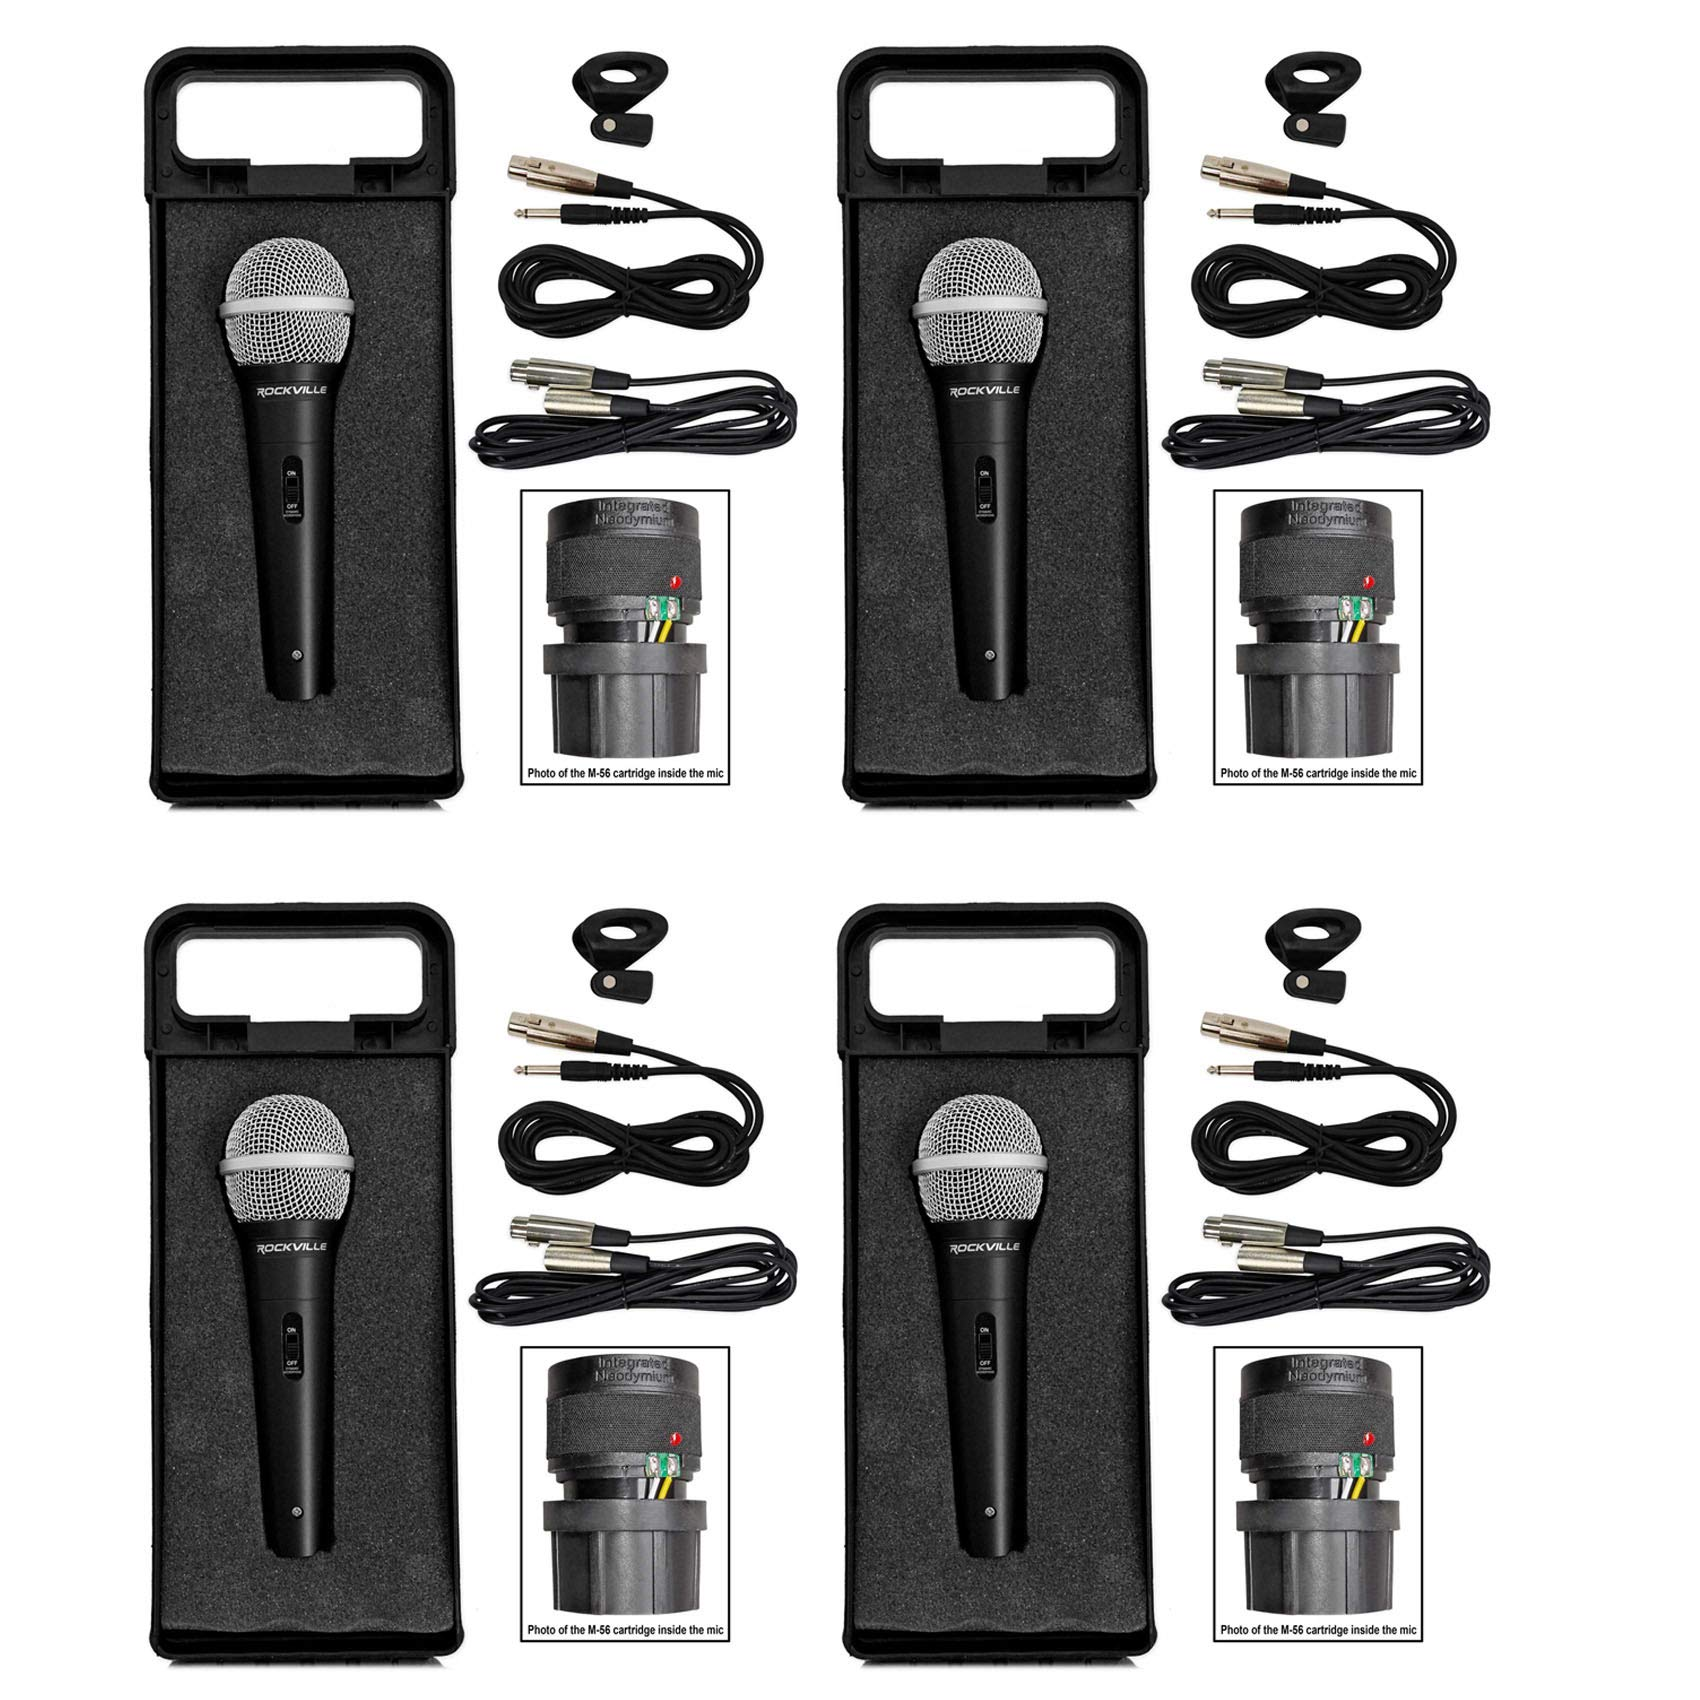 4 Rockville RMC-XLR Dynamic Cardioid Professional Metal Microphones W/XLR Cable by Rockville